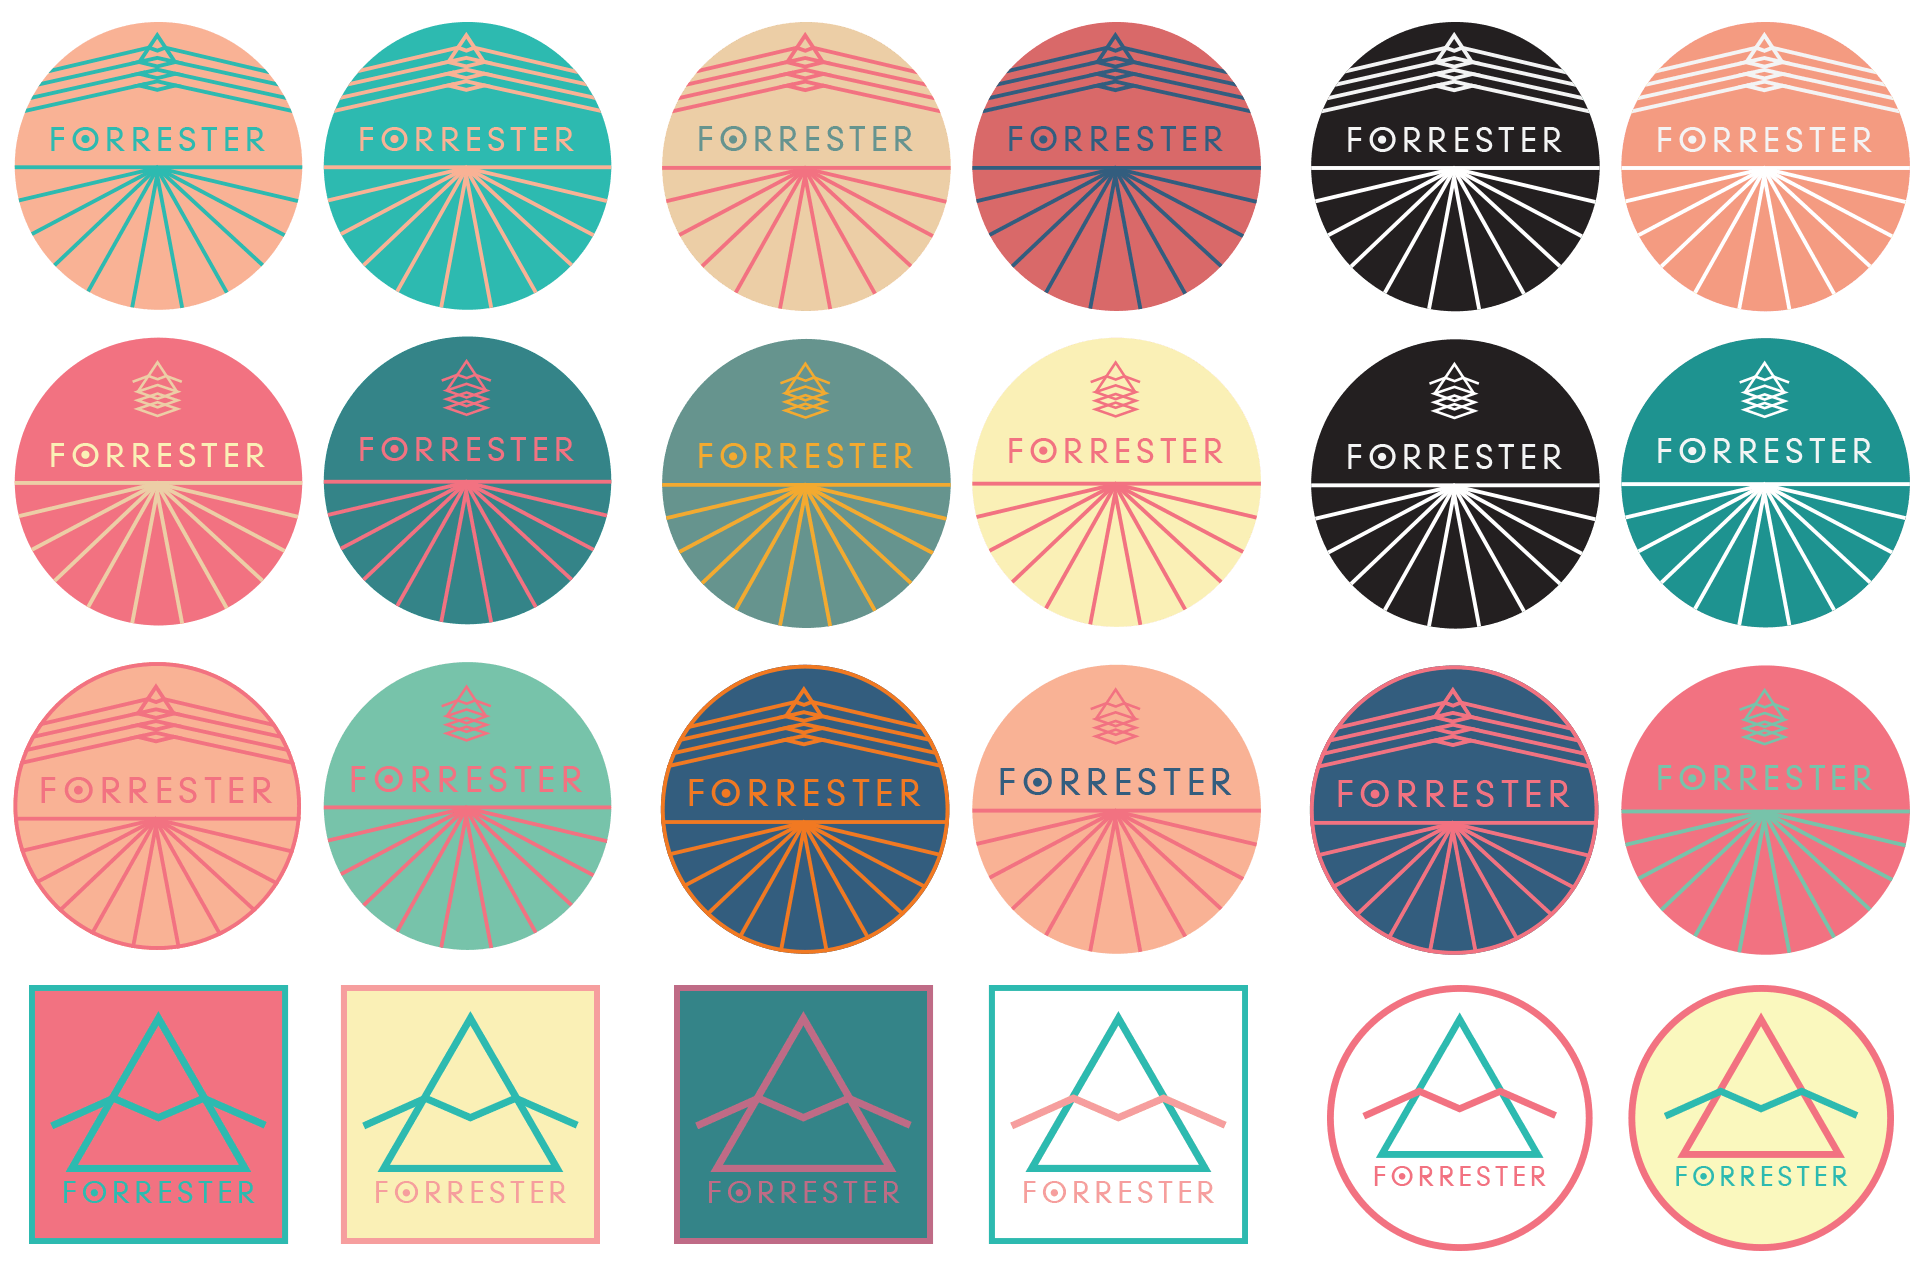 forrester-stickers